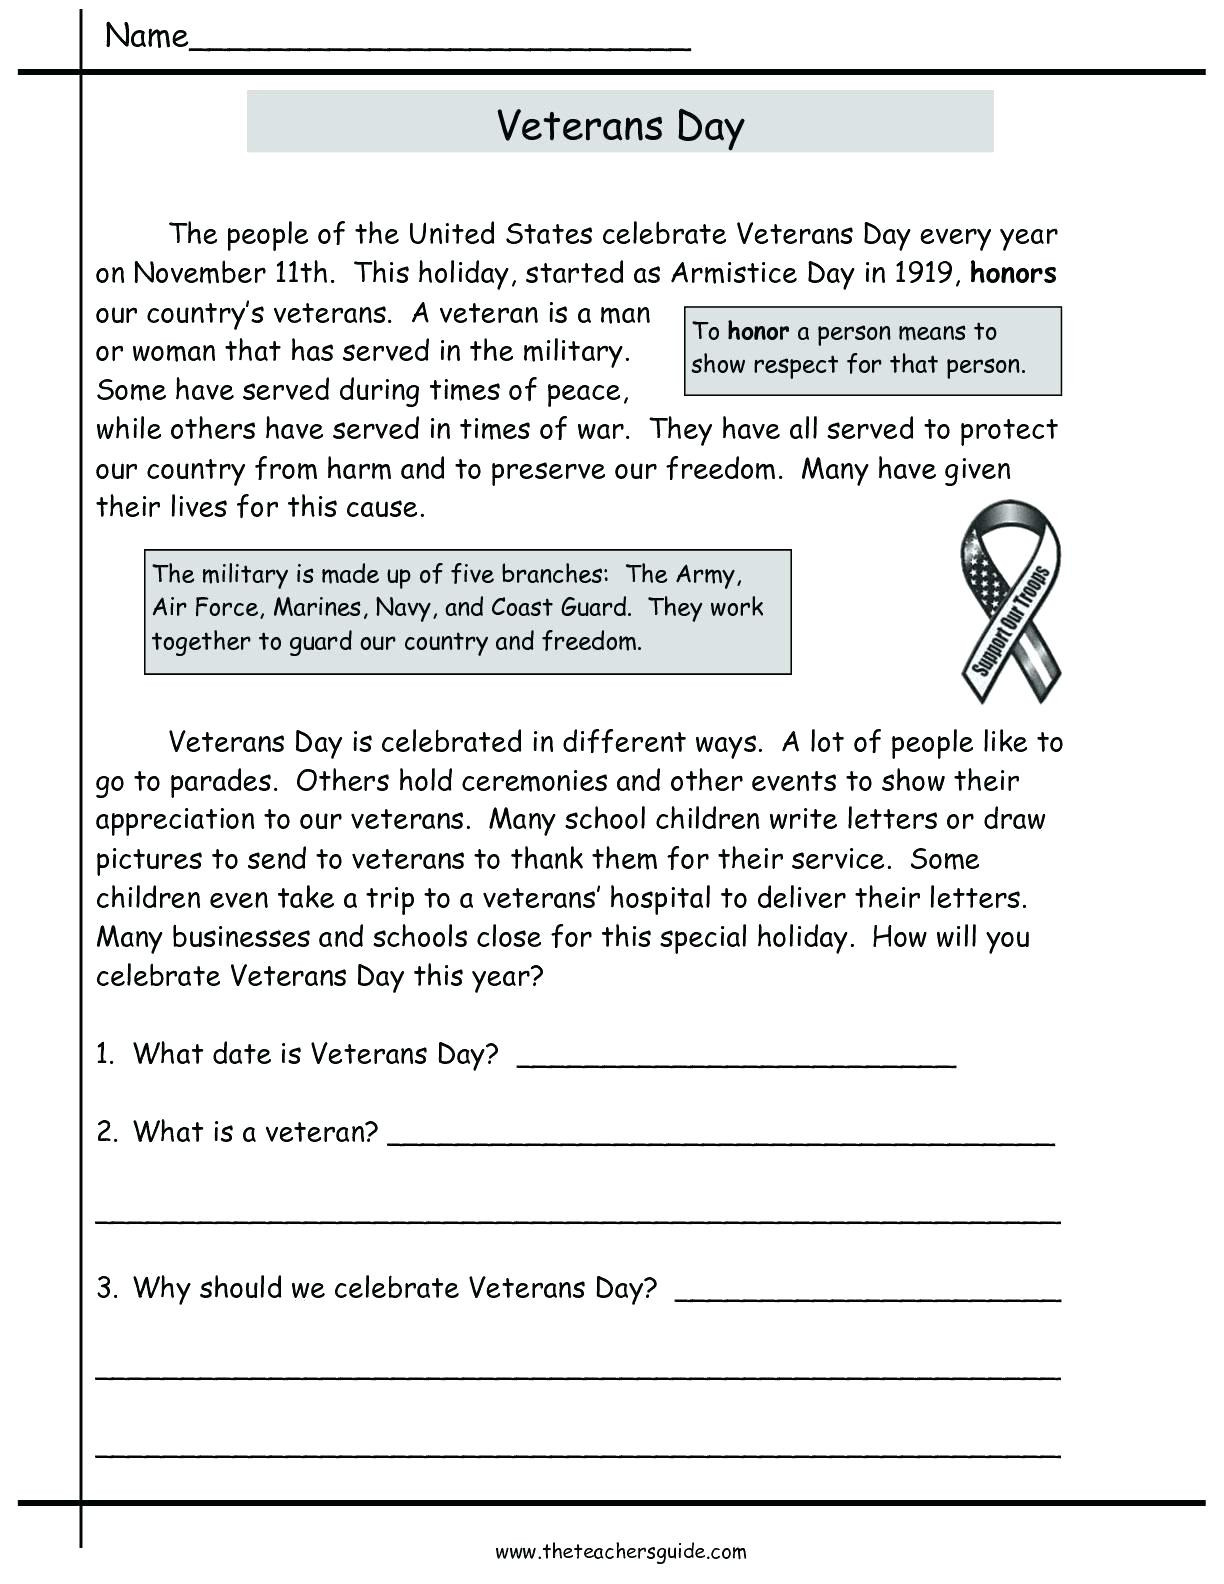 Veterans Day Math Worksheets Veterans Day Worksheets for Print Veterans Day Worksheets